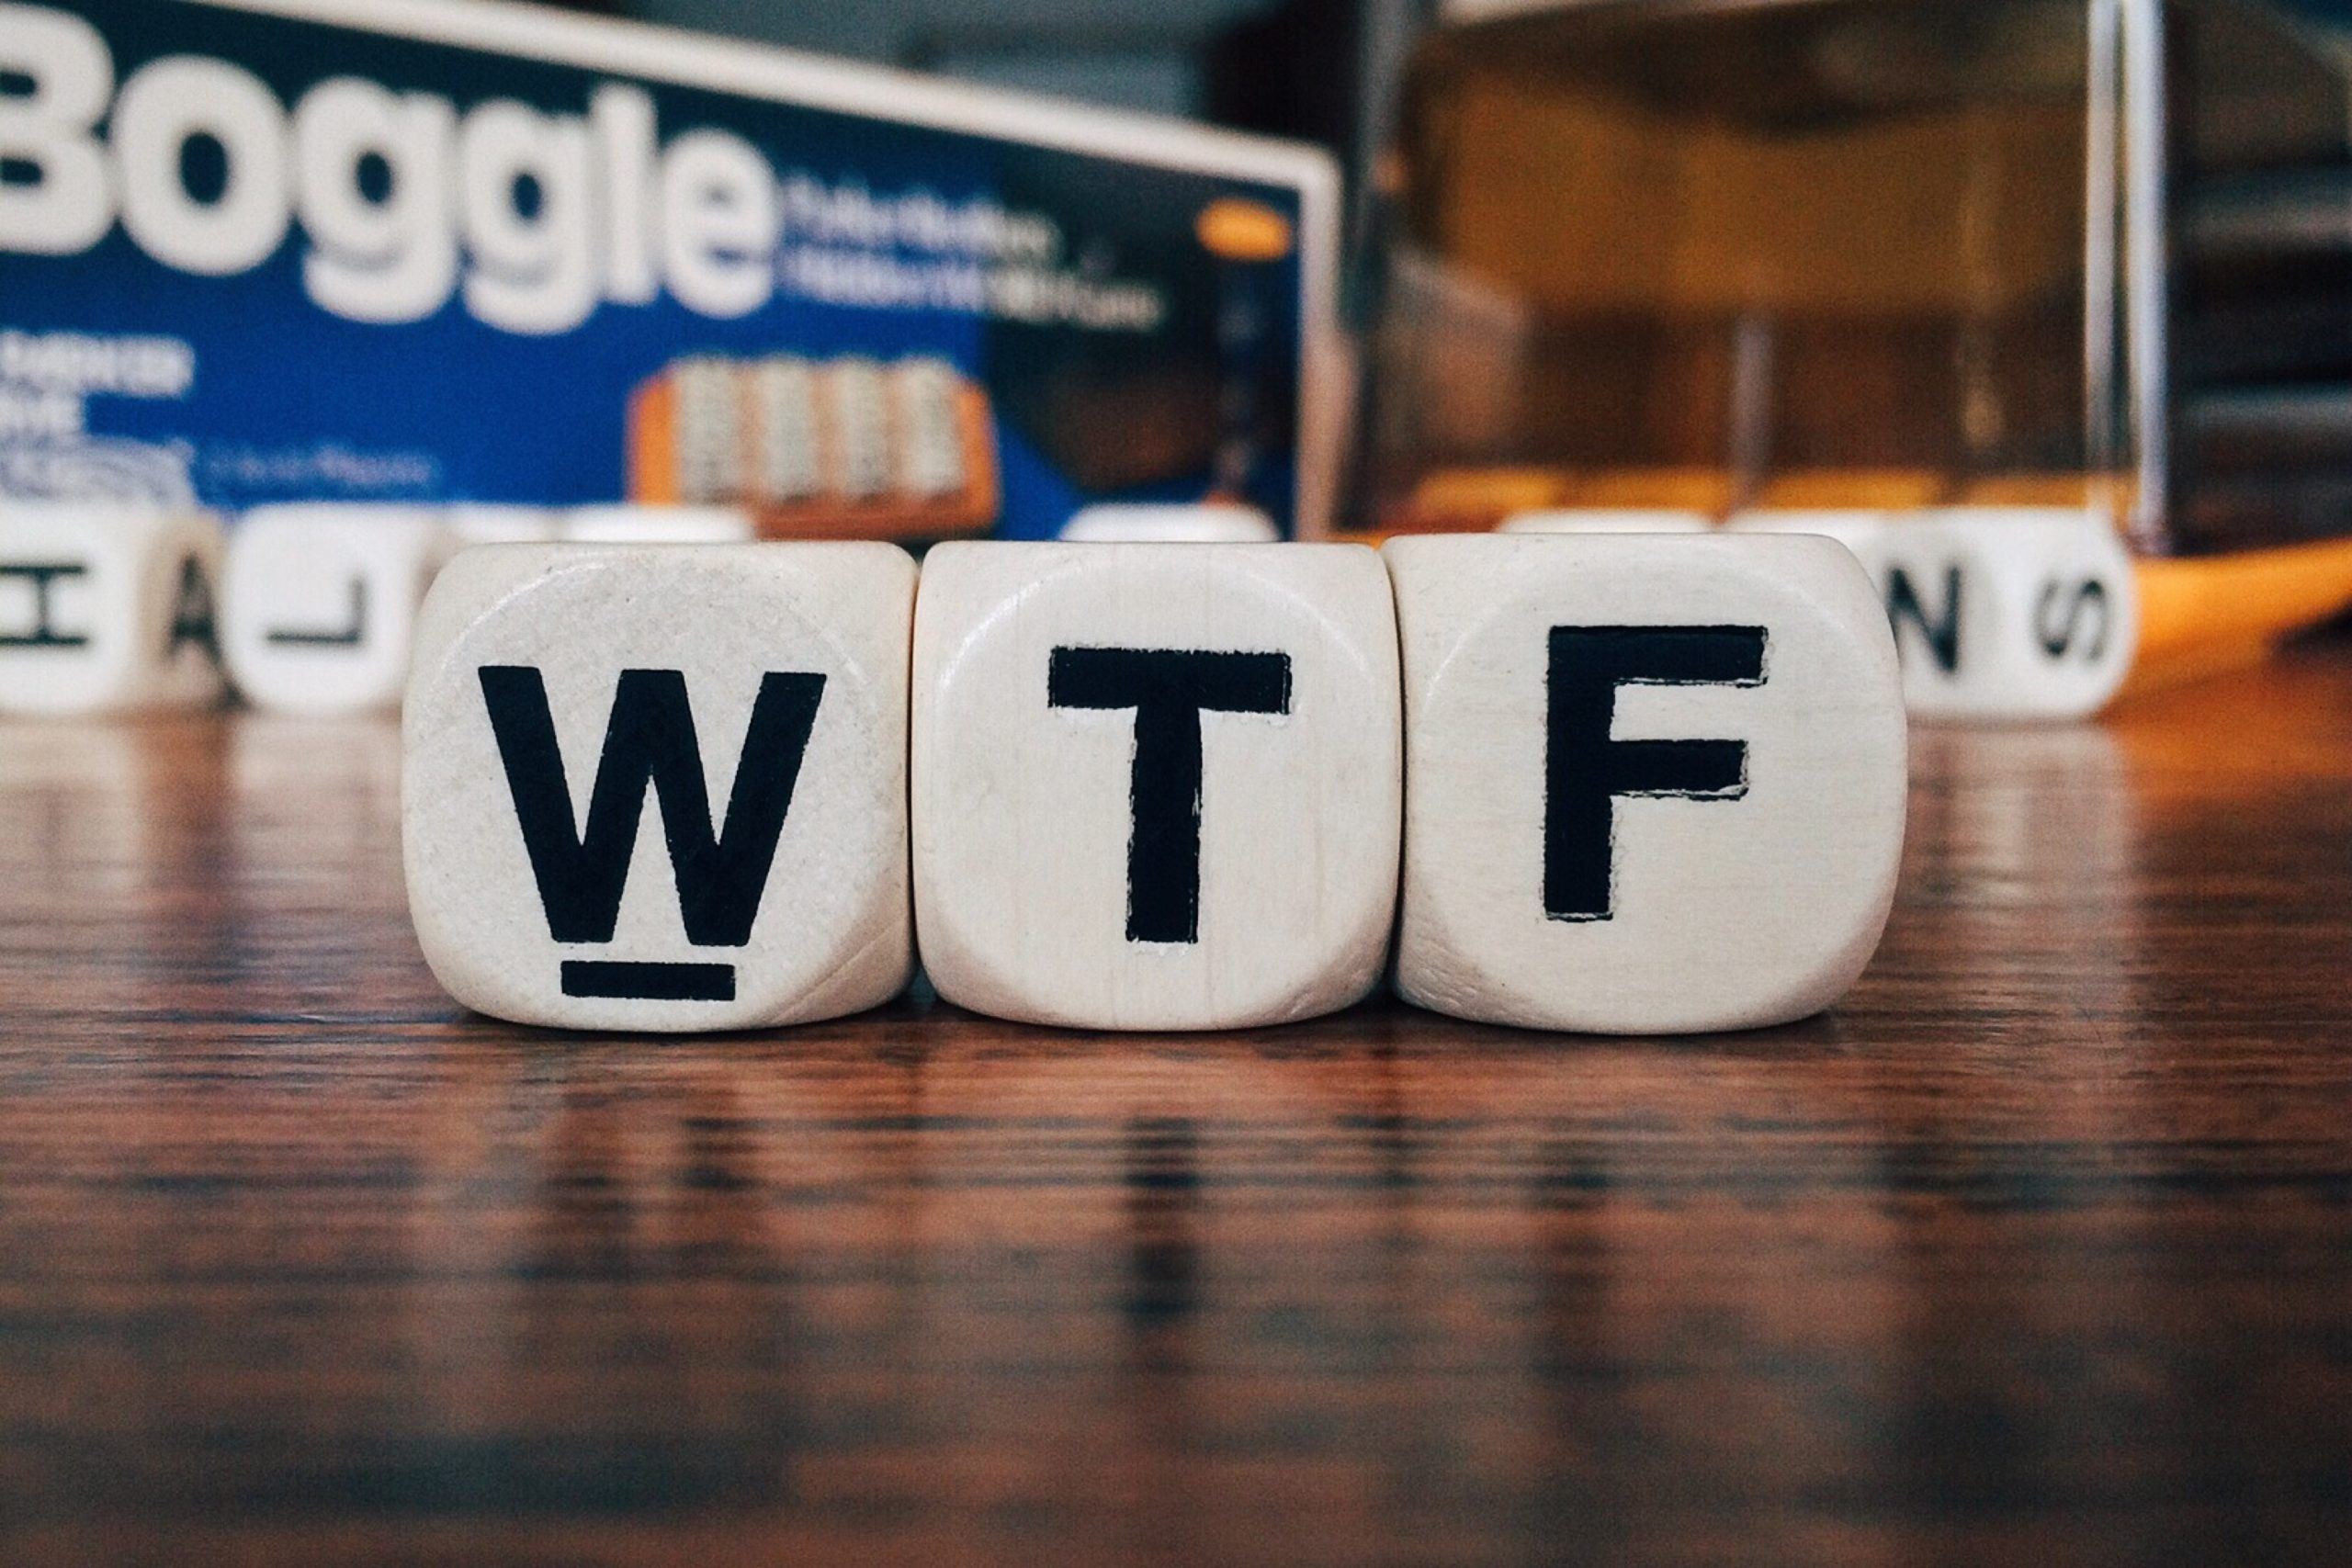 The letters W, T and F on a set of white dice